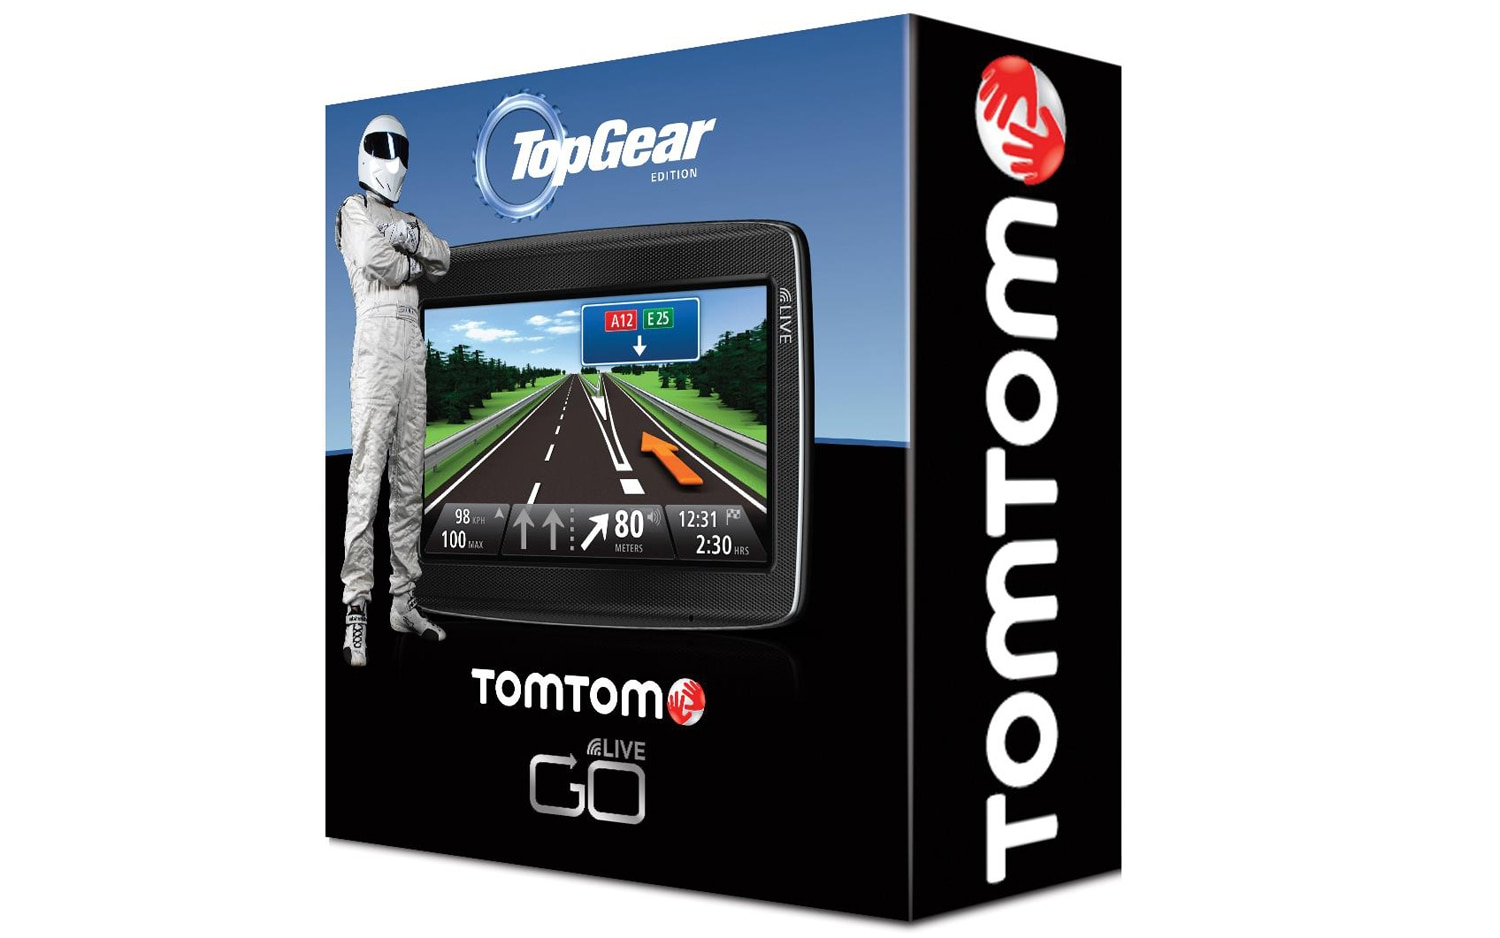 tomtom launches limited edition top gear gps. Black Bedroom Furniture Sets. Home Design Ideas